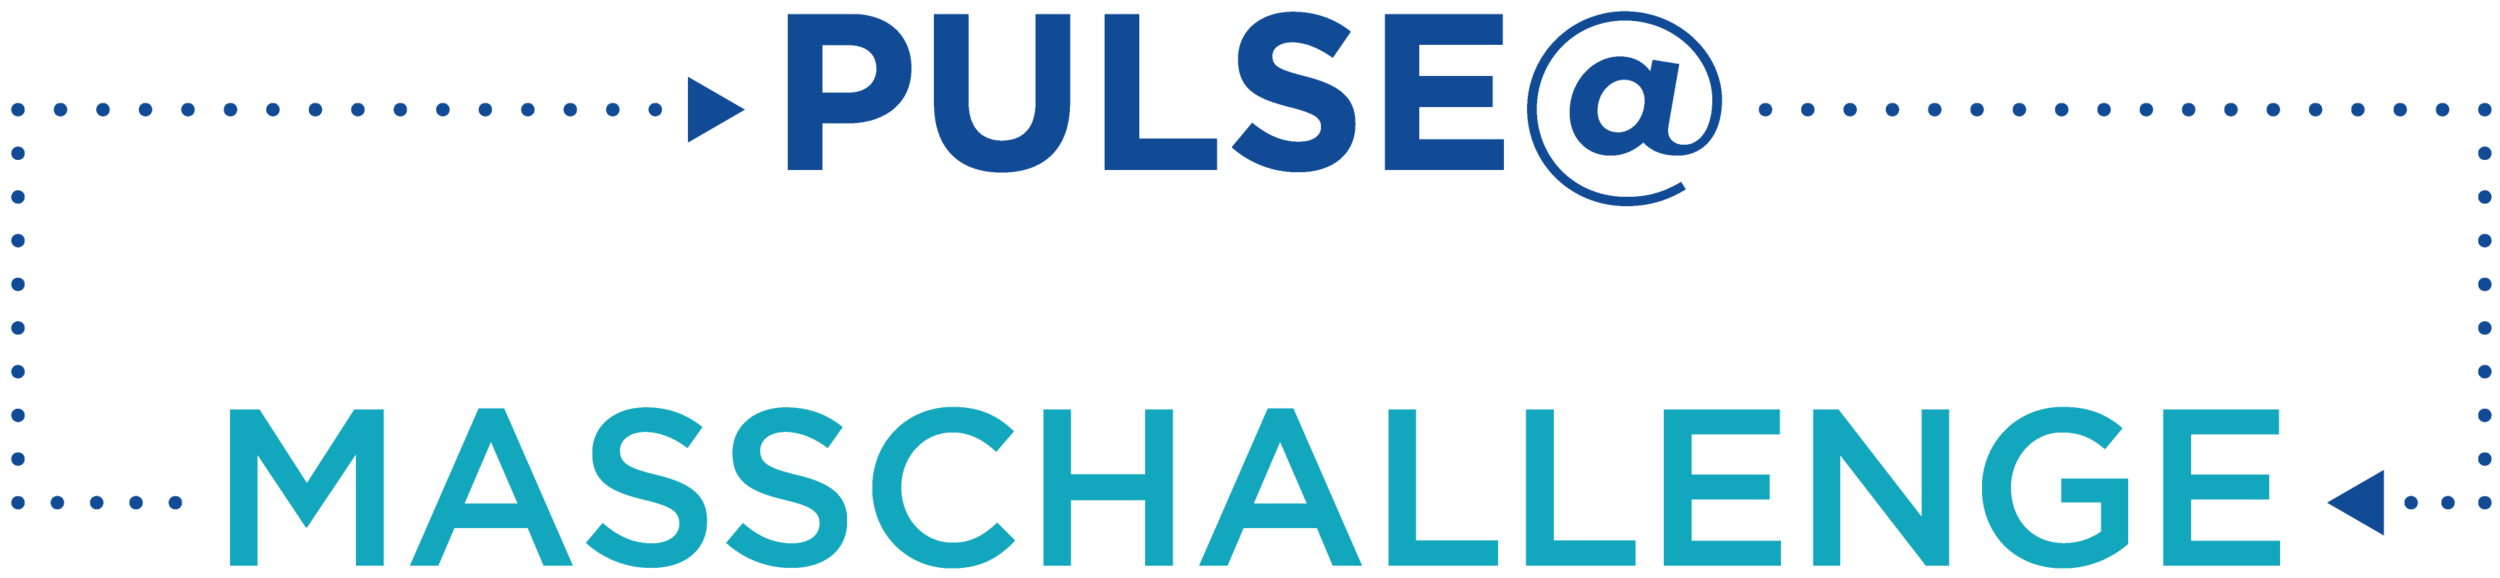 PULSE-Logo-Color.png